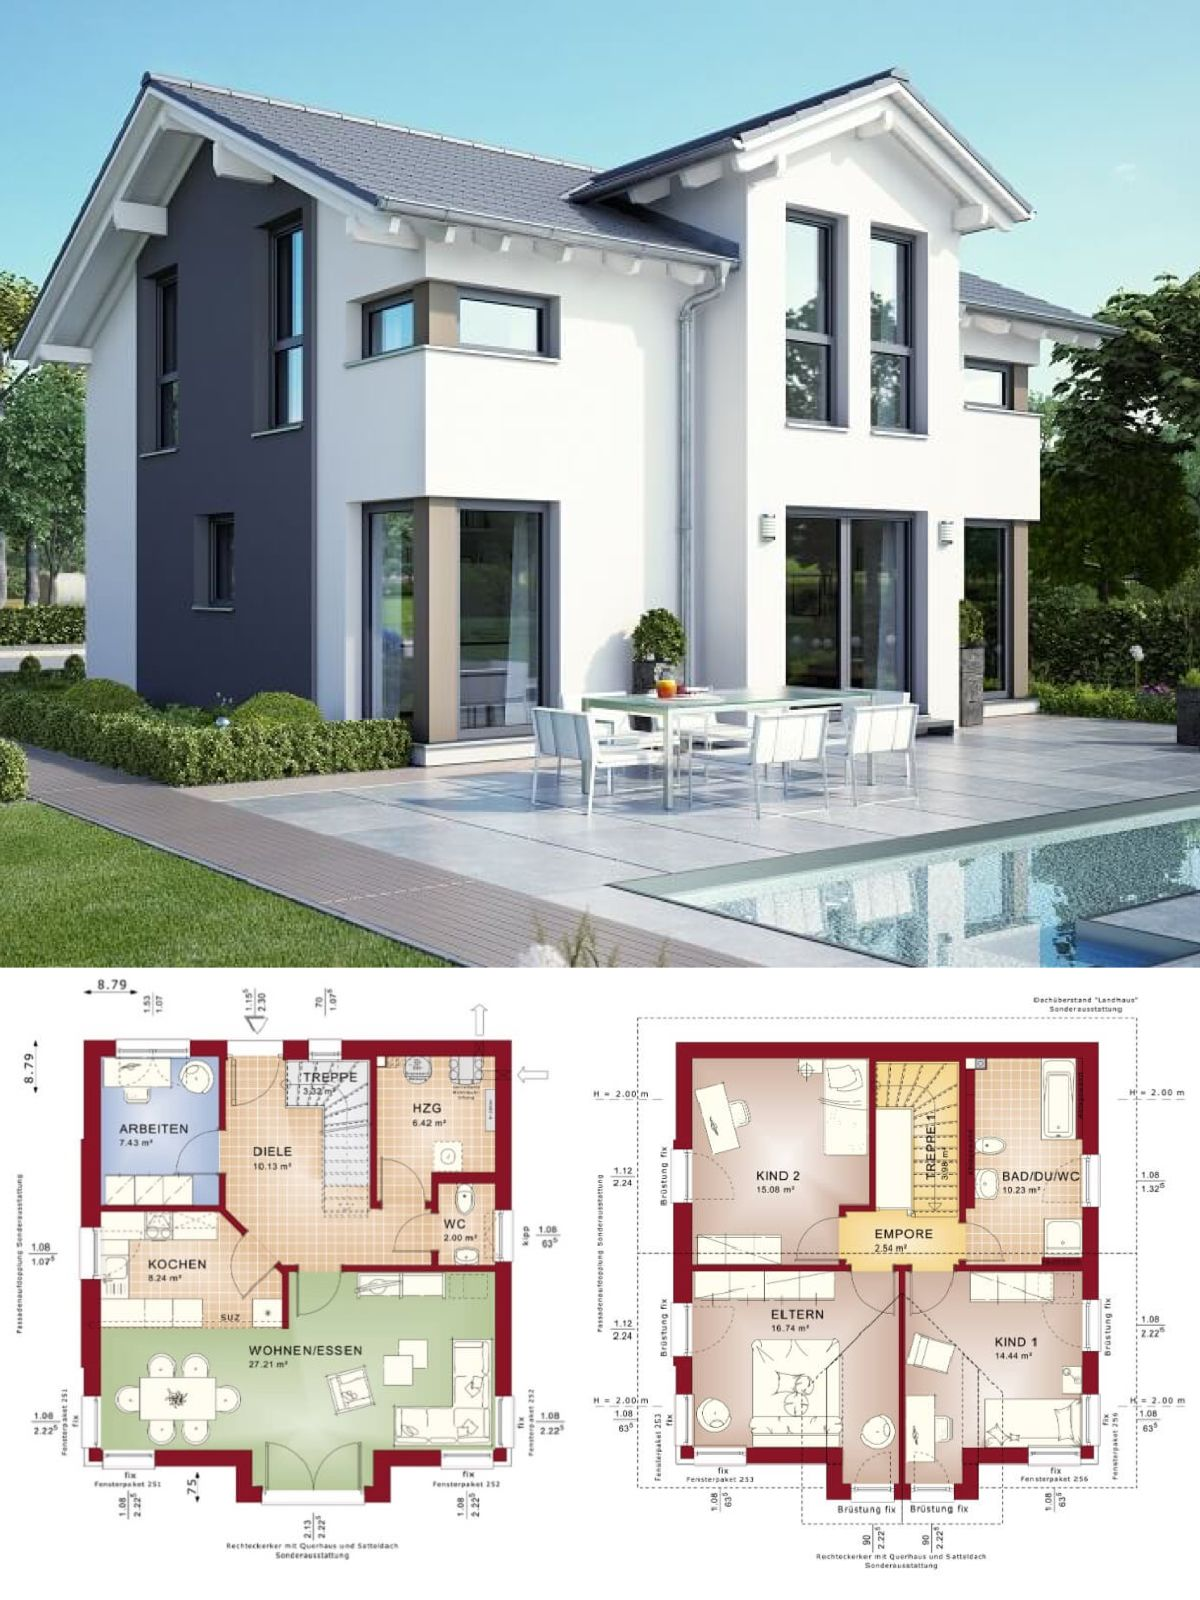 modernes haus mit satteldach architektur querhaus pool einfamilienhaus bauen grundriss. Black Bedroom Furniture Sets. Home Design Ideas